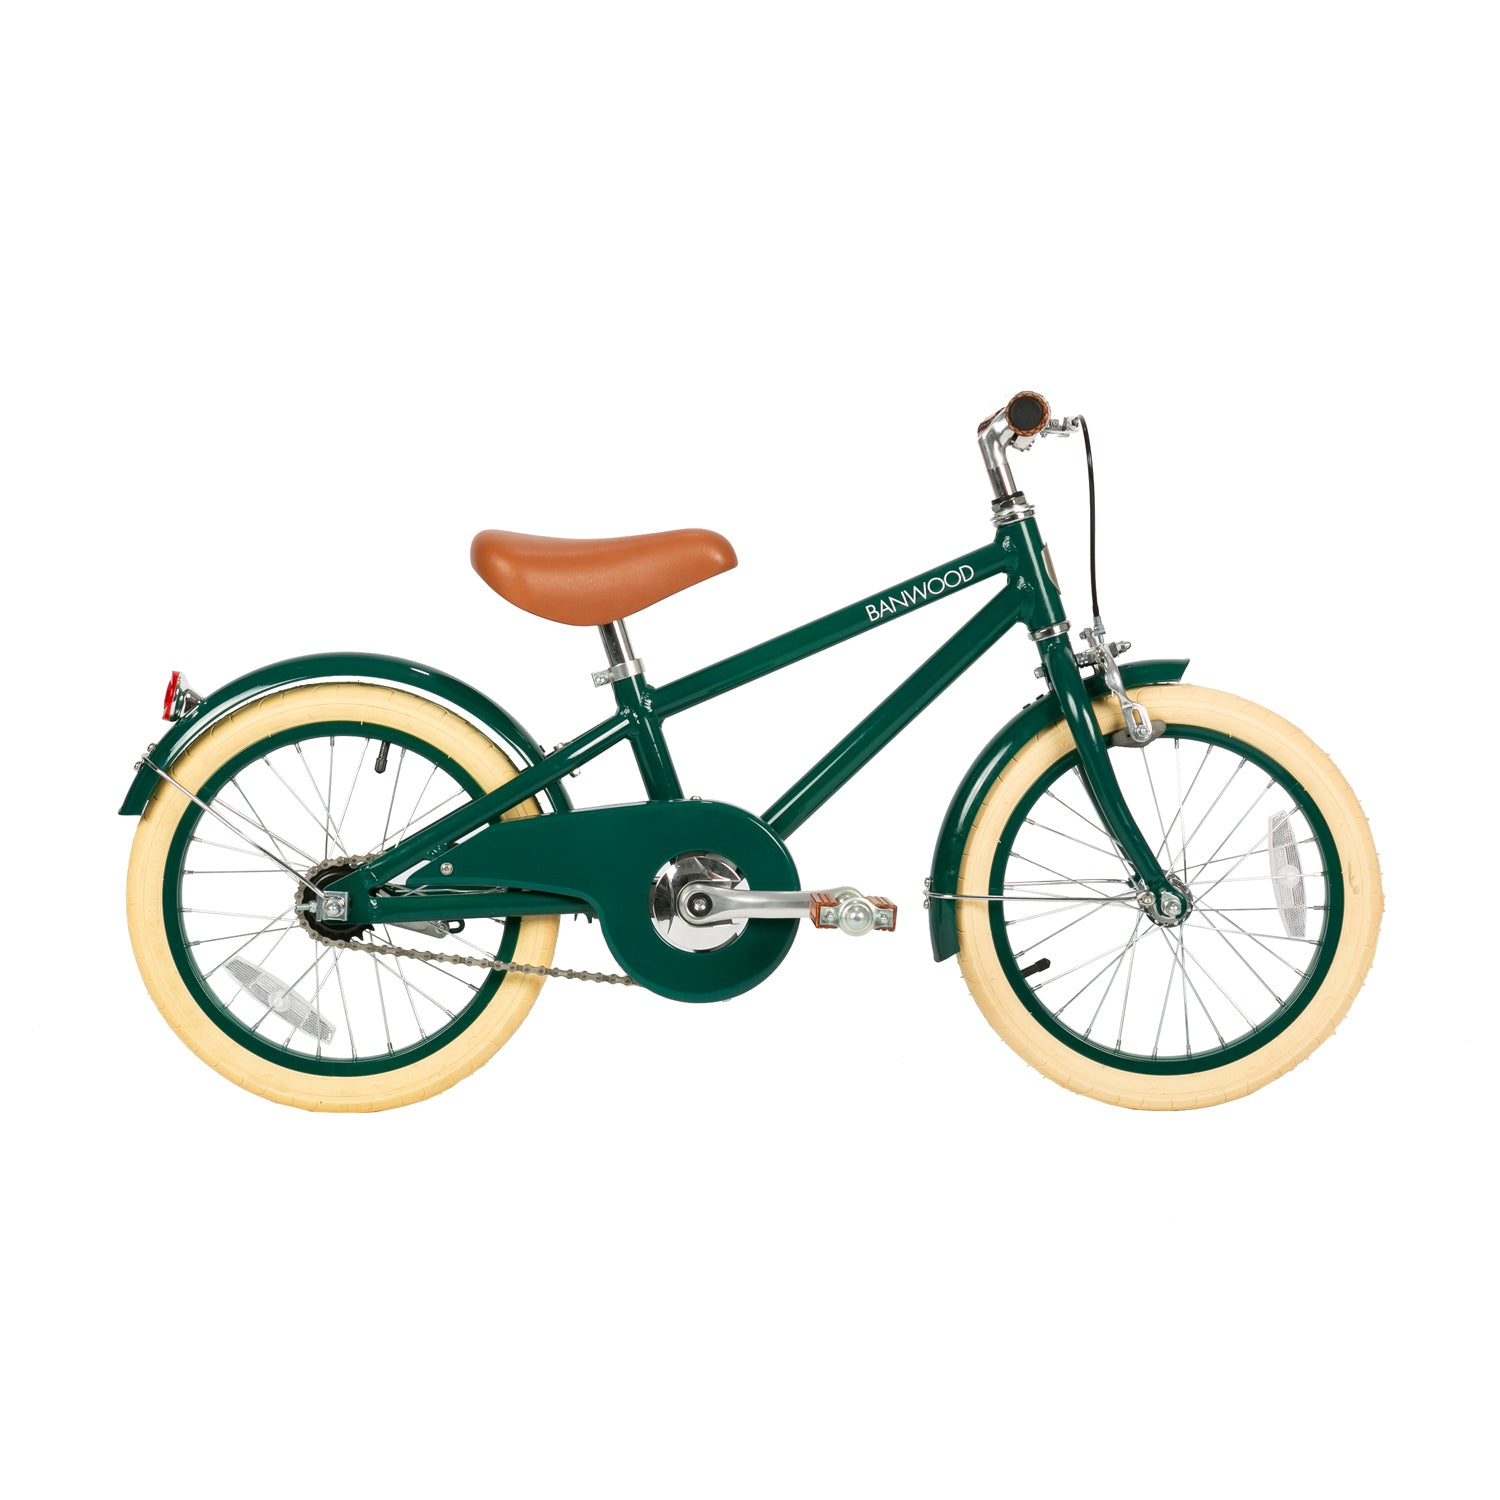 Classic Pedal Bike // Forrest Green